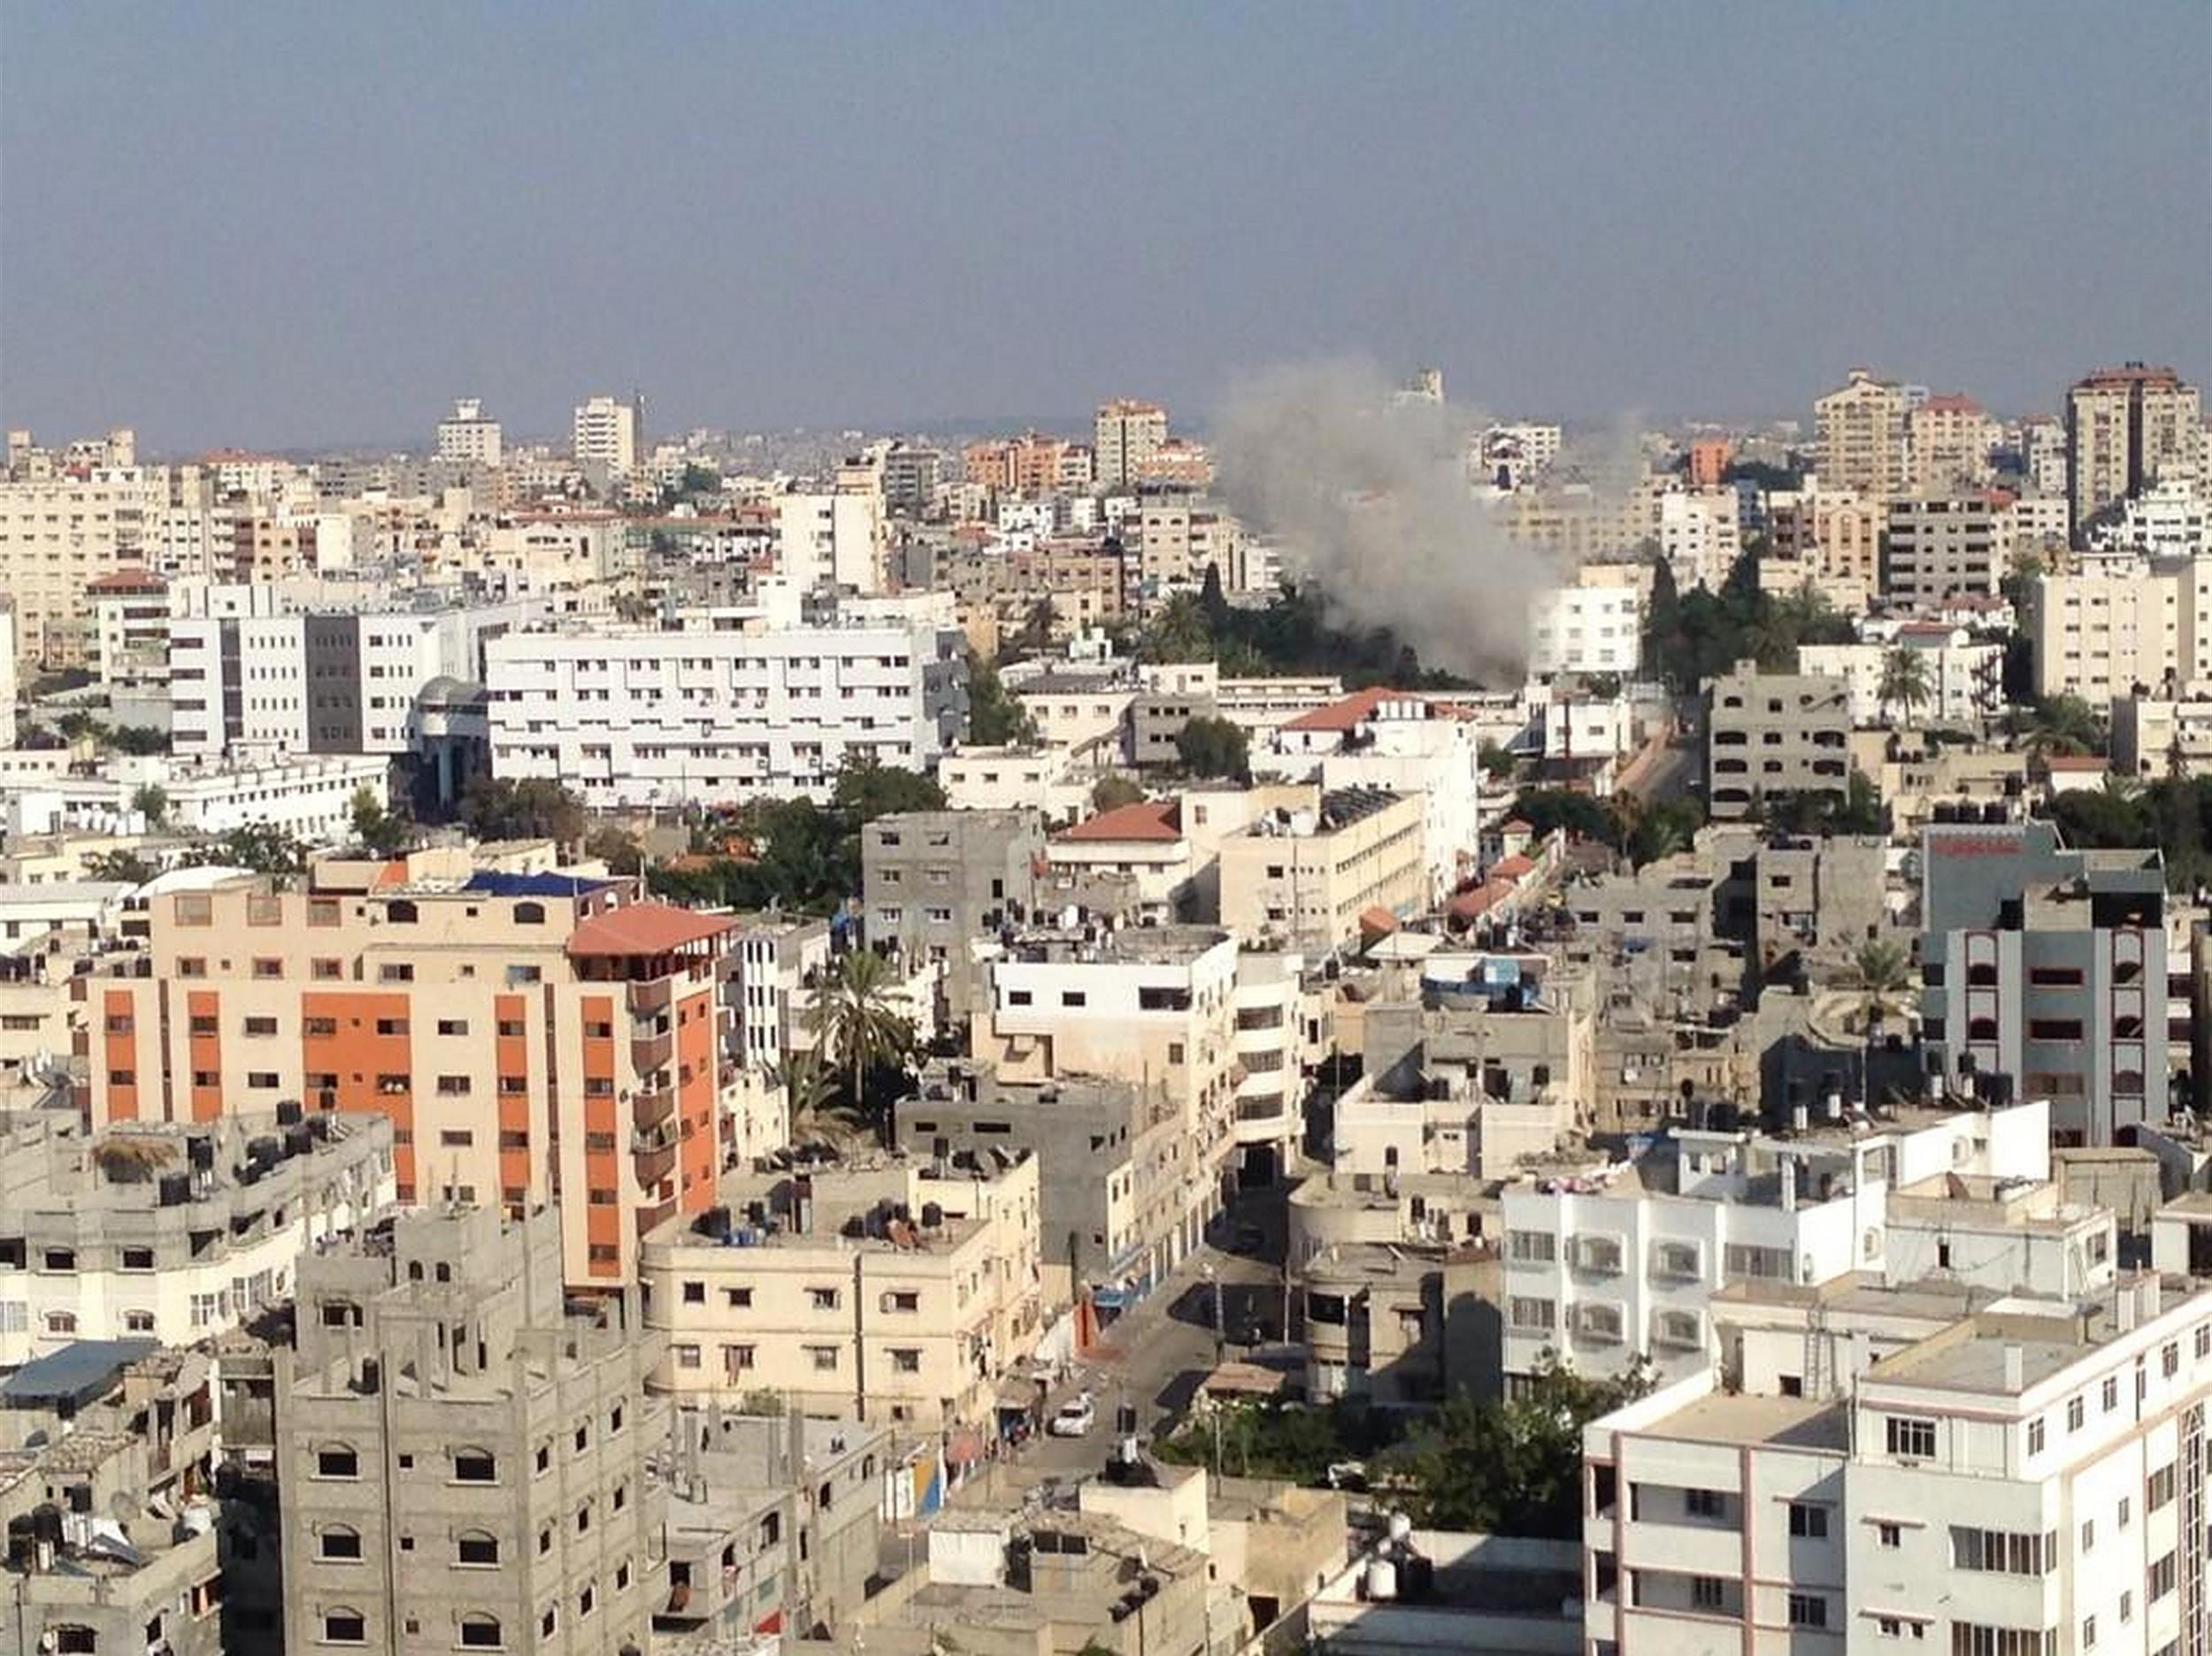 An Israeli strike in the vicinity of Shifa hospital in Gaza City, July 28, 2014.